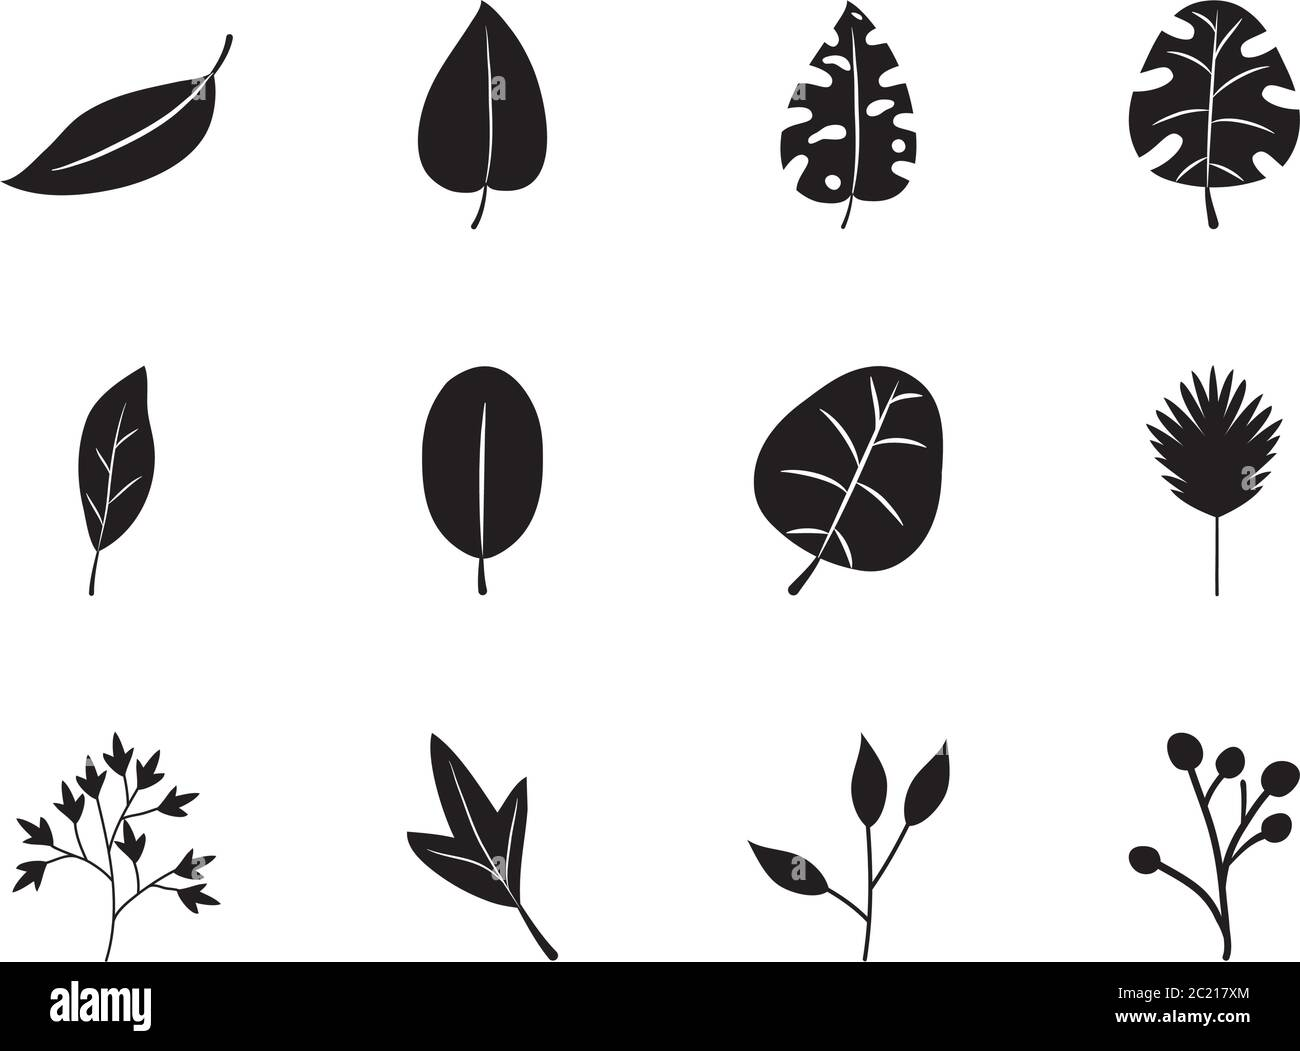 Palm Leaves And Tropical Leaves Icon Set Over White Background Silhouette Style Vector Illustration Stock Vector Image Art Alamy Flower icon of garden and tropical flowering plant vector. alamy